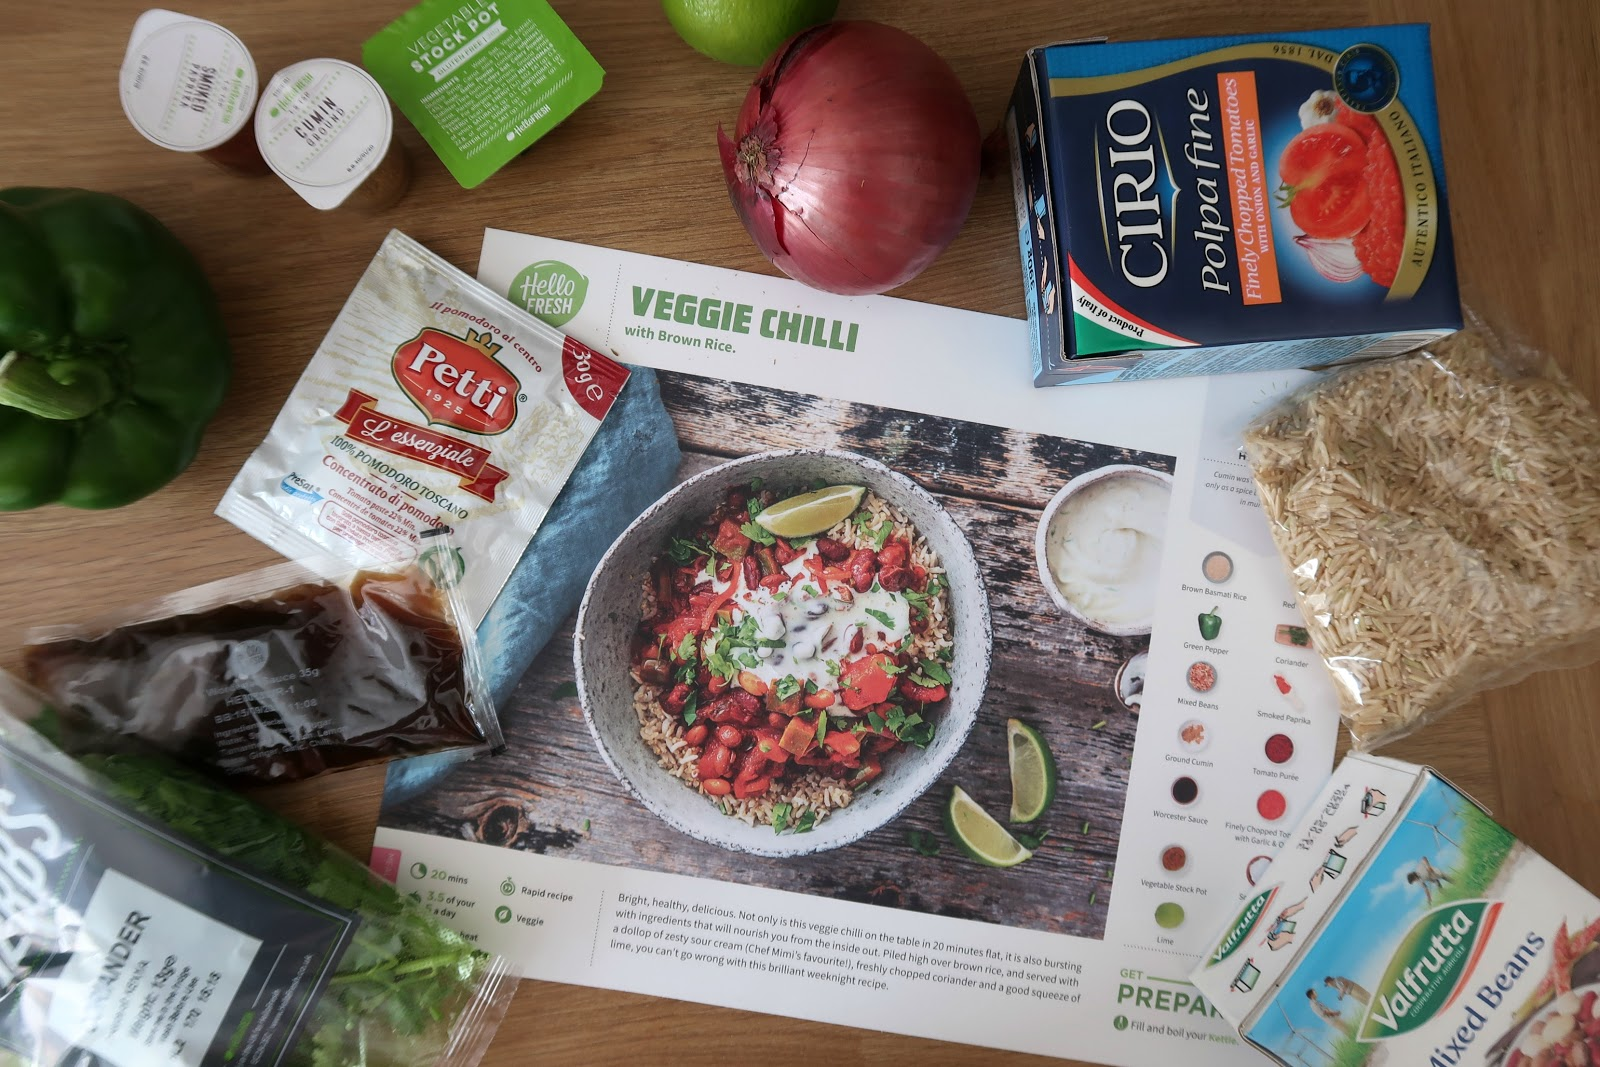 Retail Store  Hellofresh Meal Kit Delivery Service